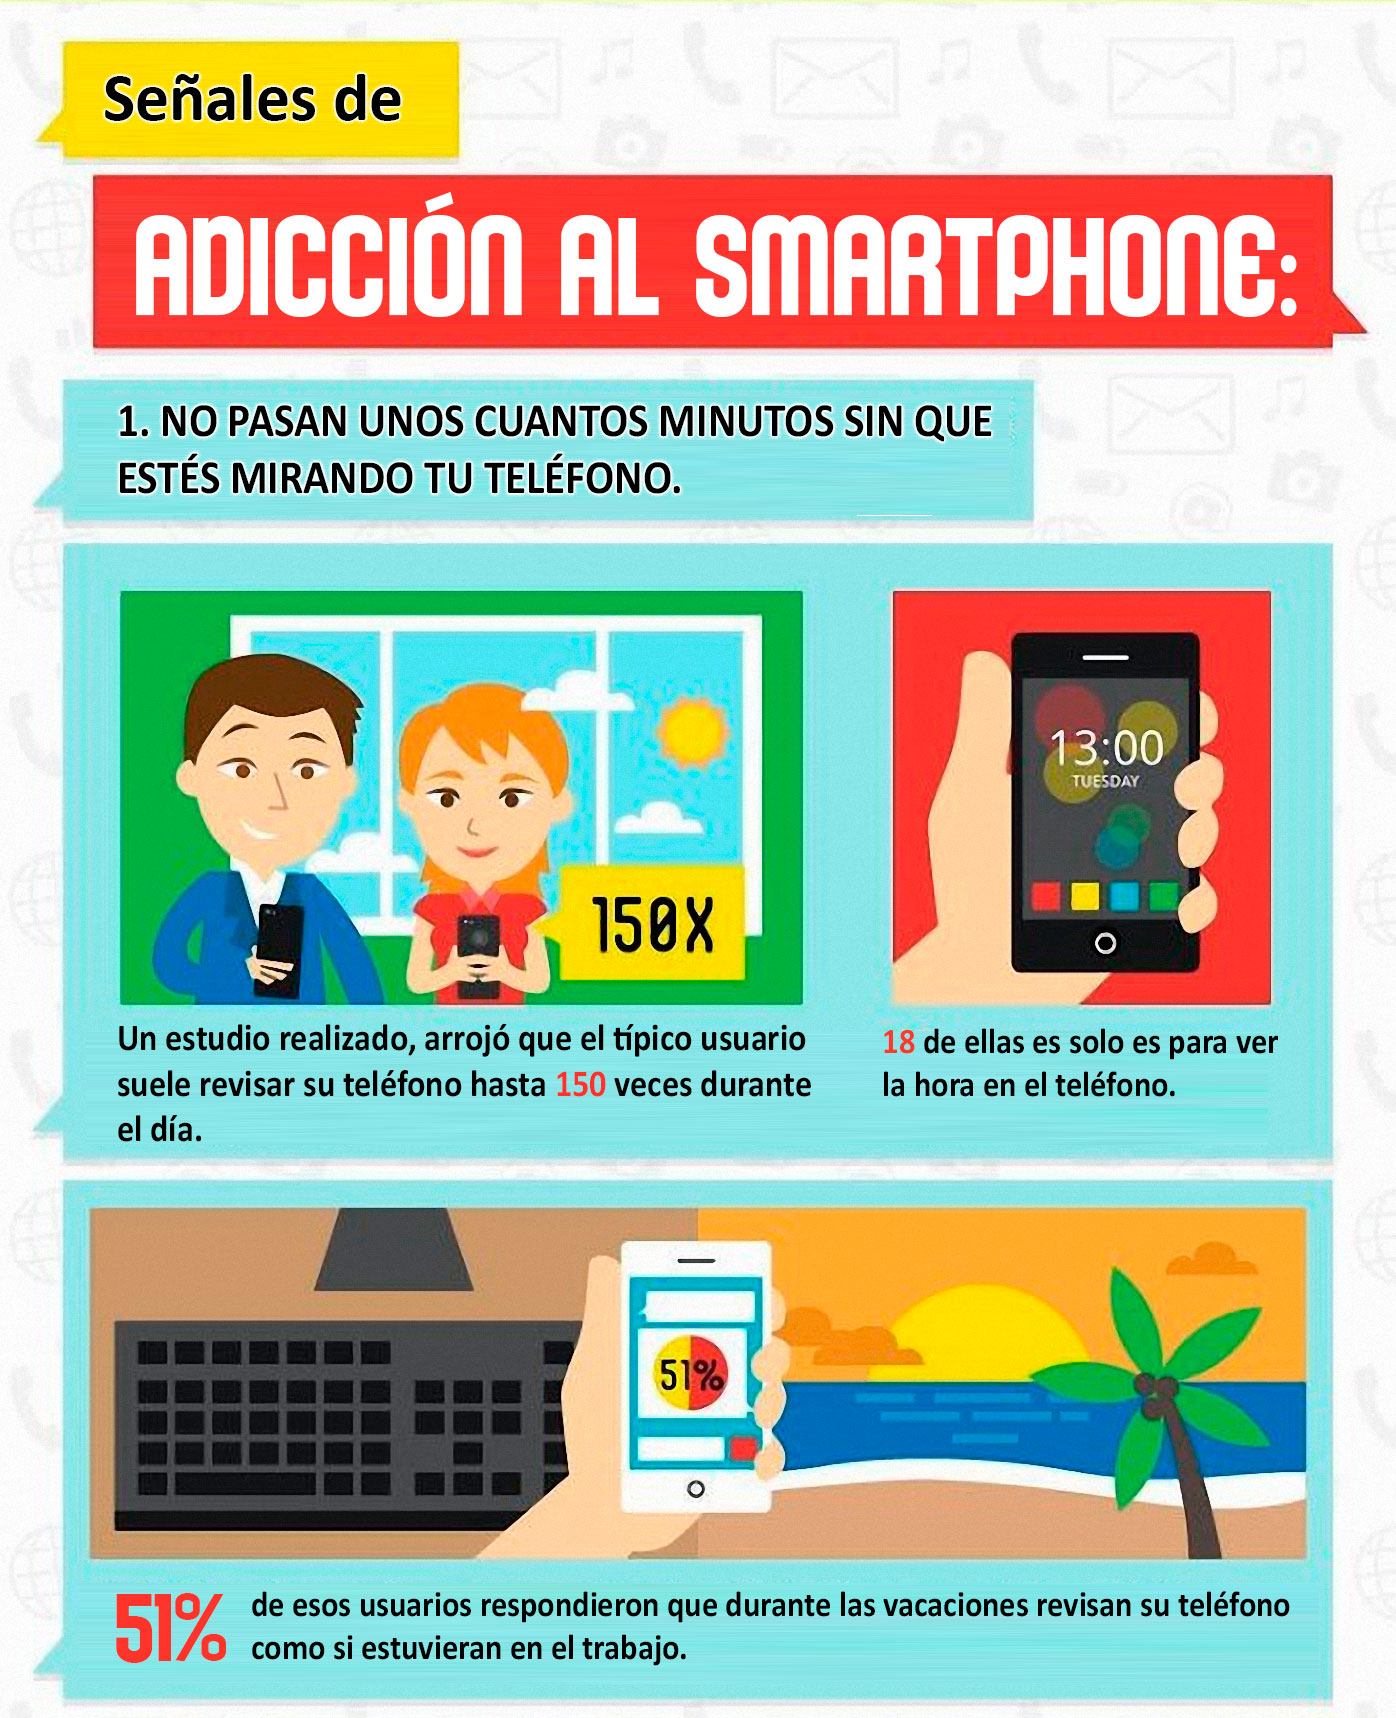 smartphone-addiction_03